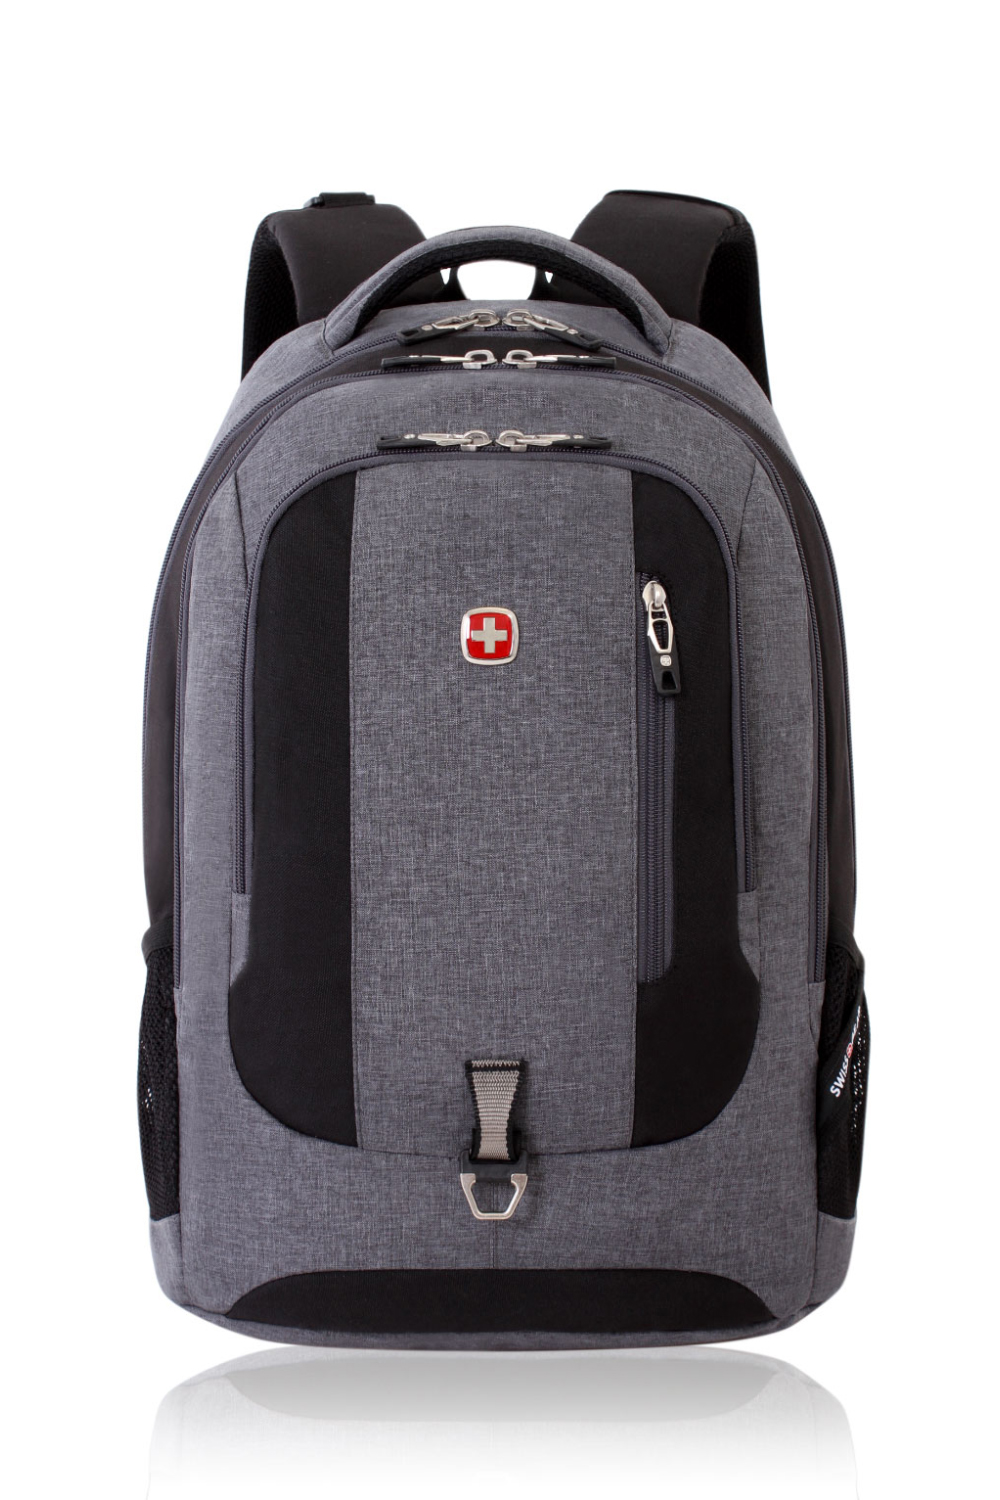 SWISSGEAR 3101 Laptop Backpack - Black/Heather